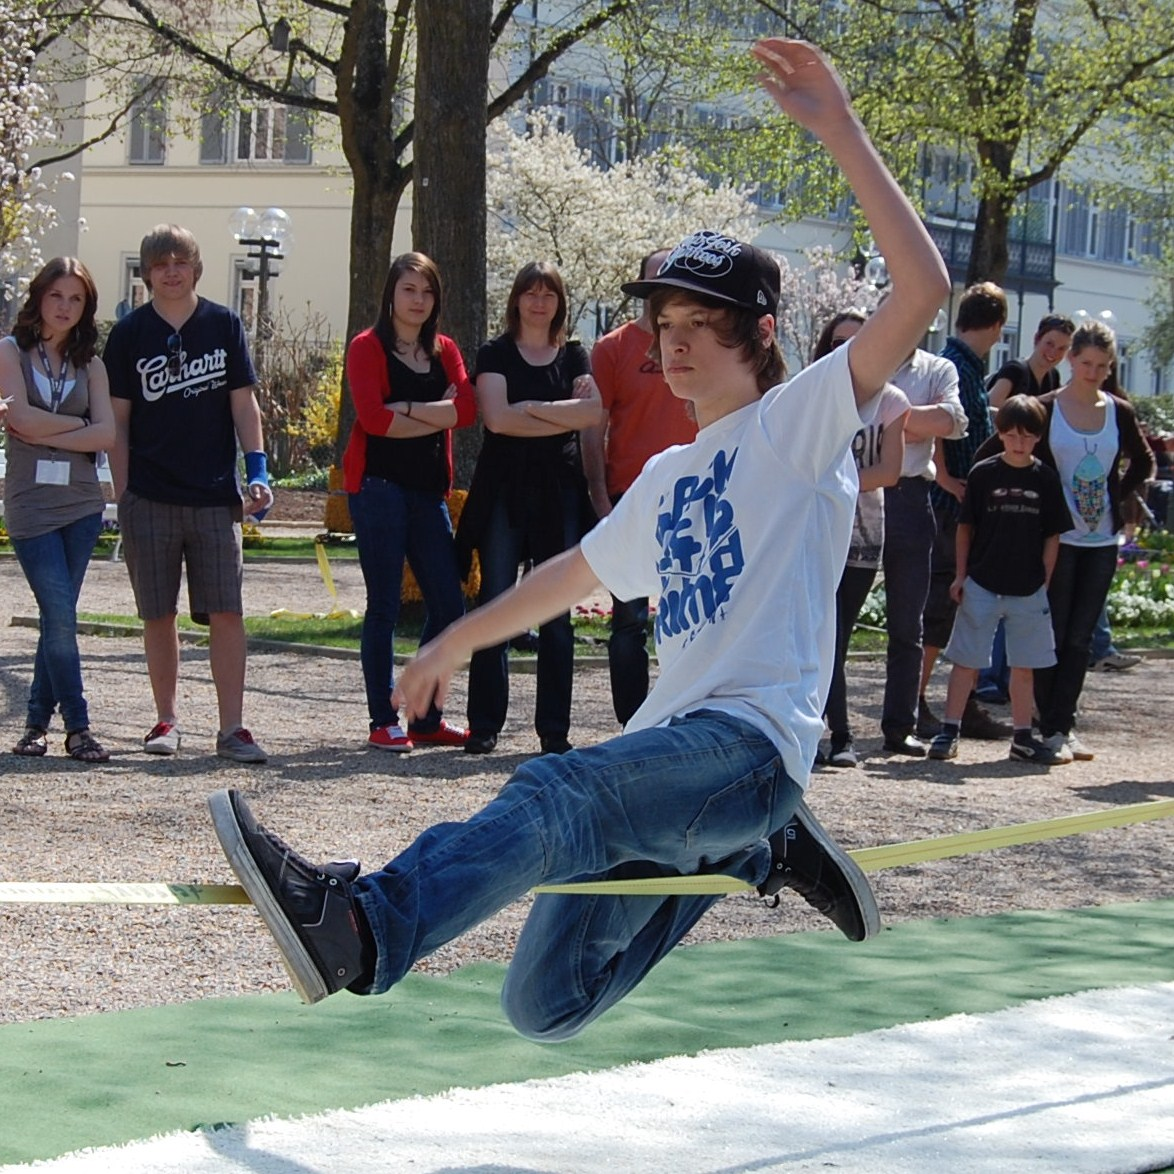 https://upload.wikimedia.org/wikipedia/commons/4/4d/Slackline-02.JPG?uselang=es